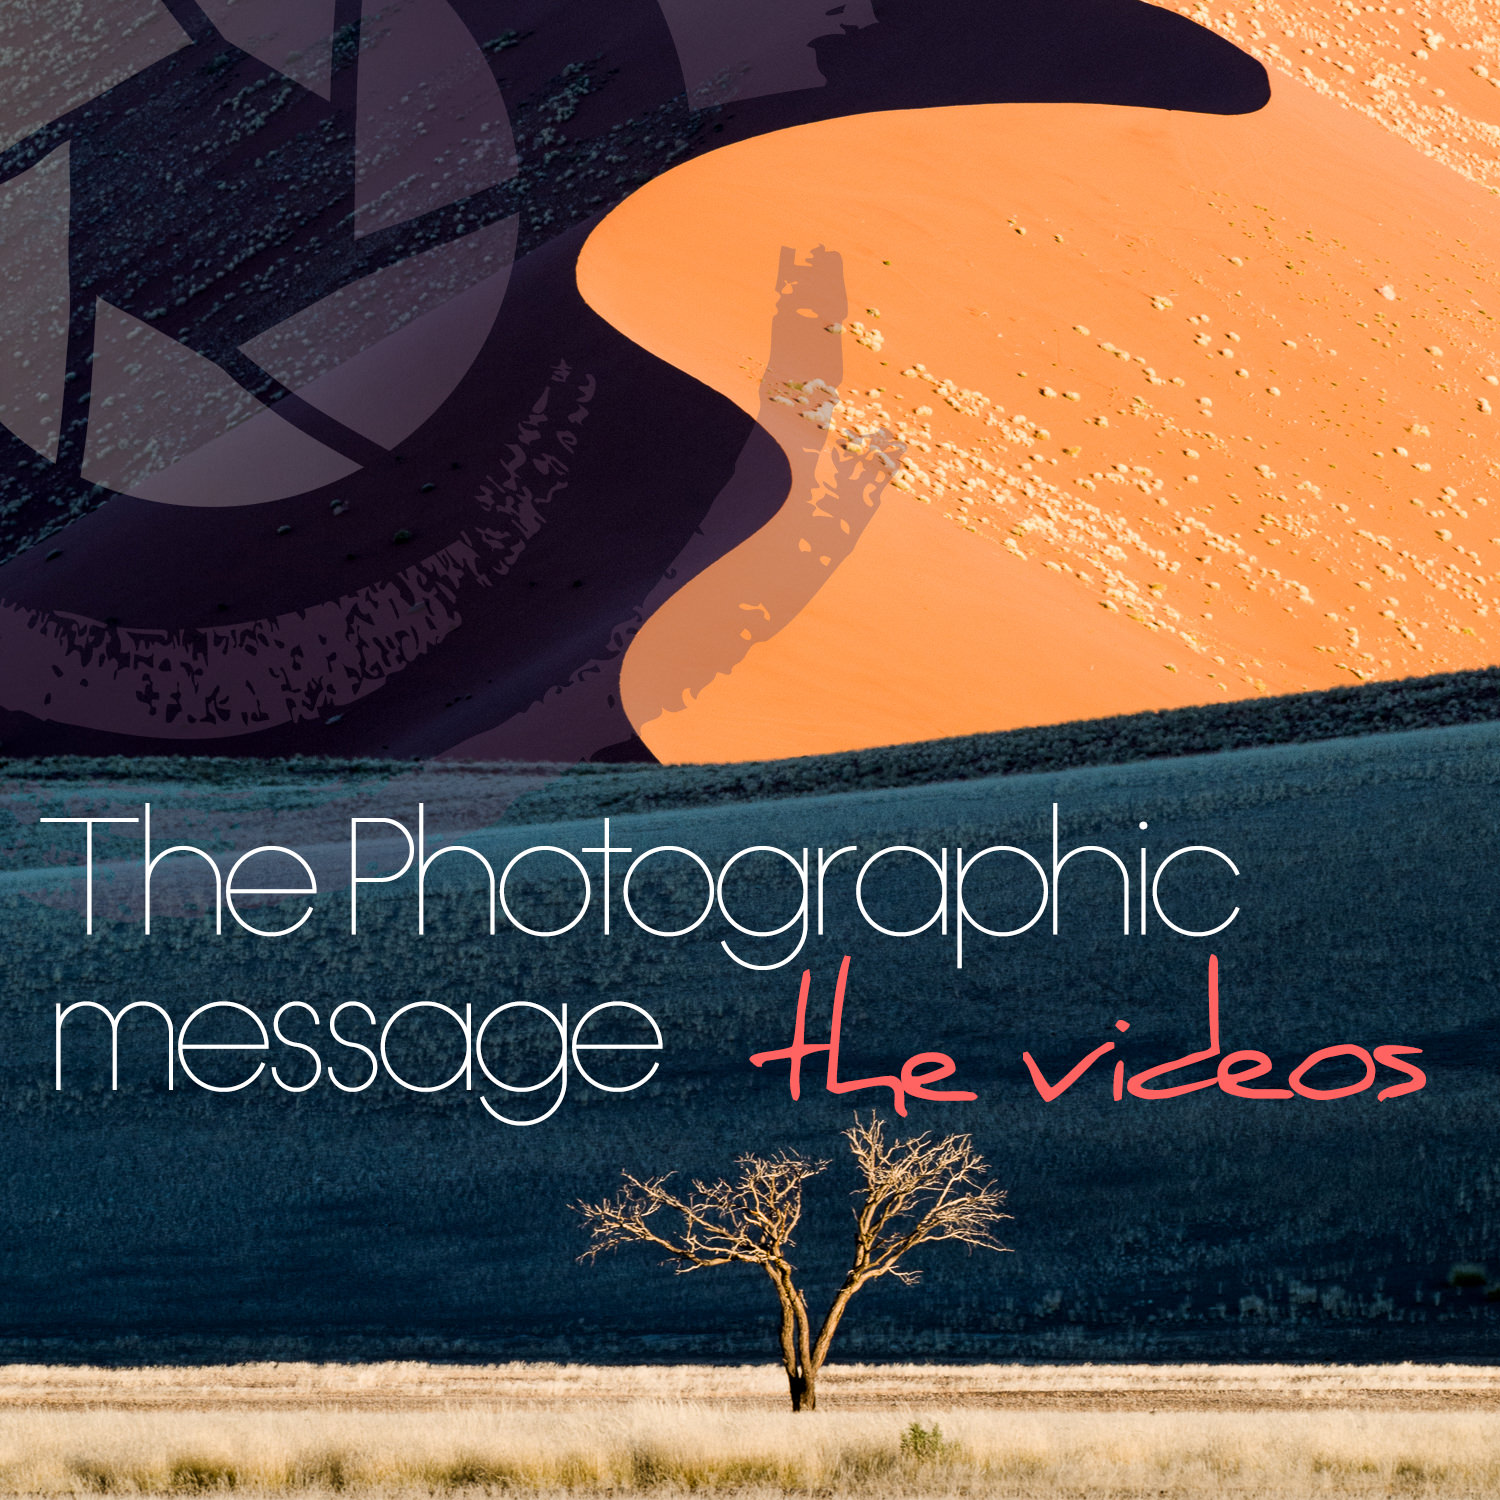 3. THE PHOTOGRAPHIC MESSAGE - VIDEO CONTENT